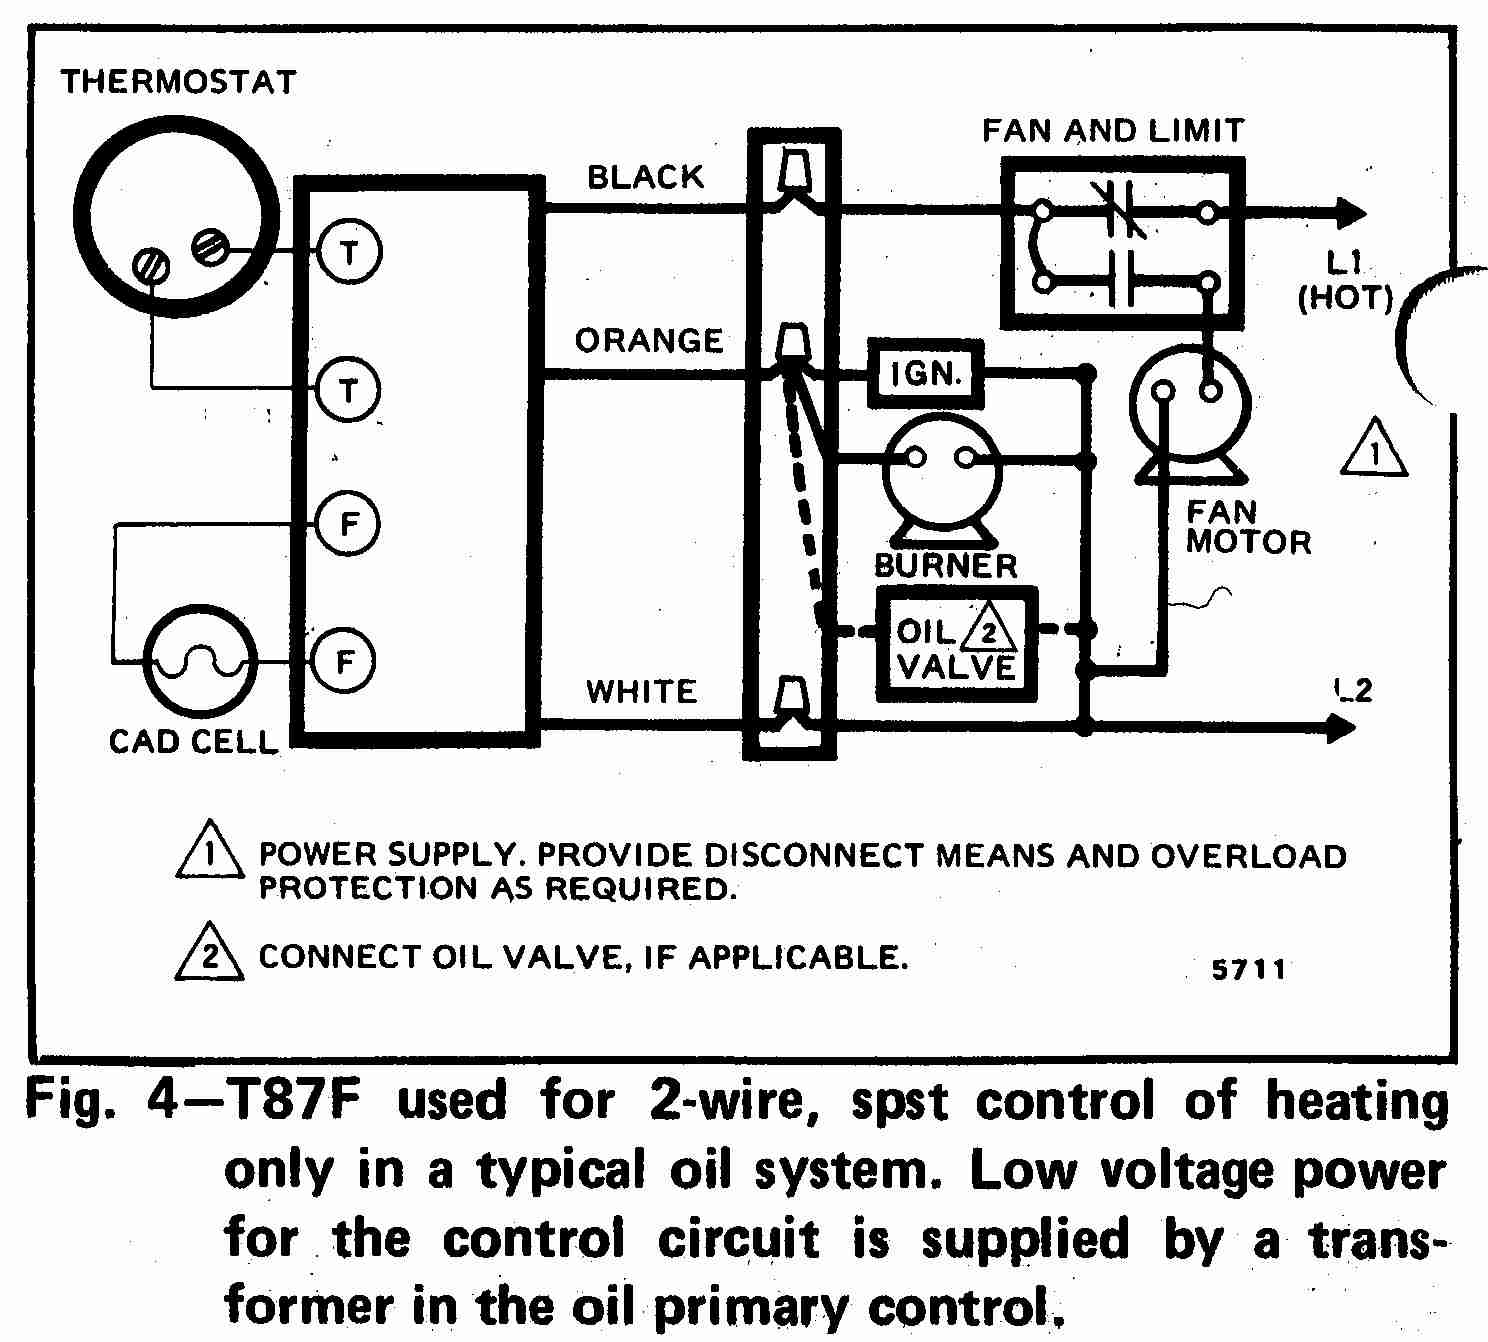 Room Thermostat Wiring Diagrams For Hvac Systems - Honeywell Wiring Diagram